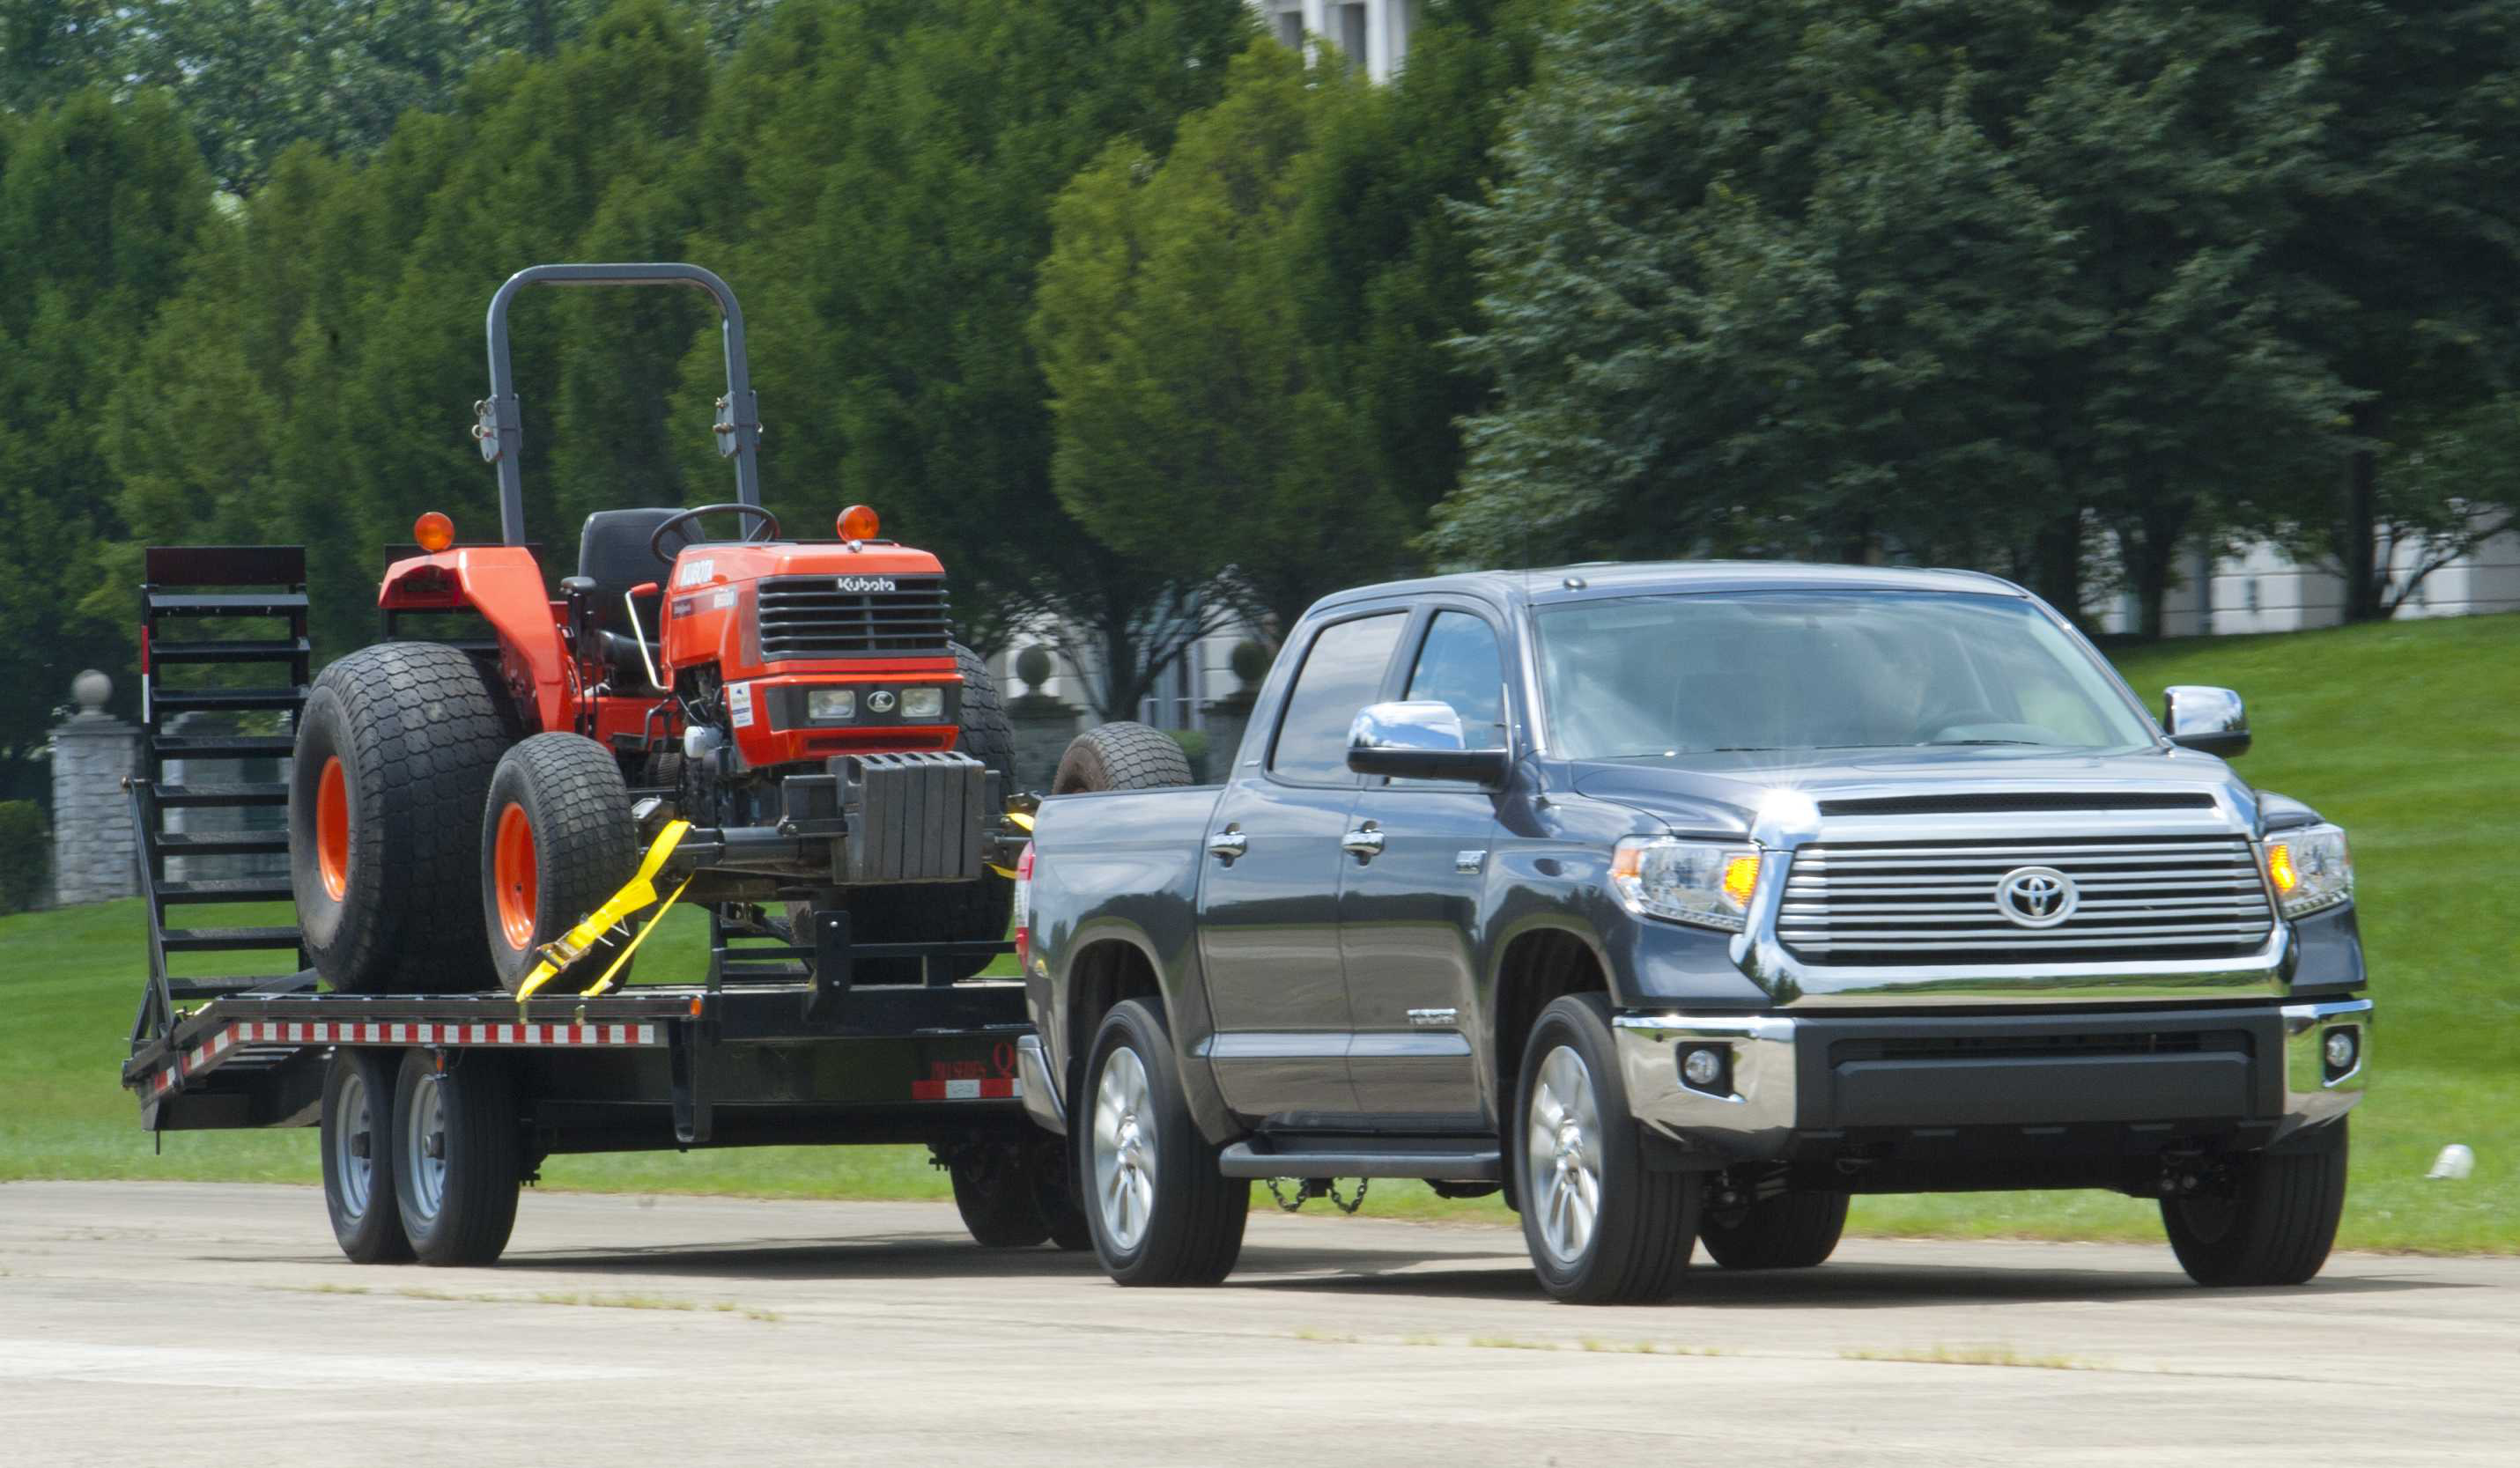 Toyota Tundra scores highest in reliability survey